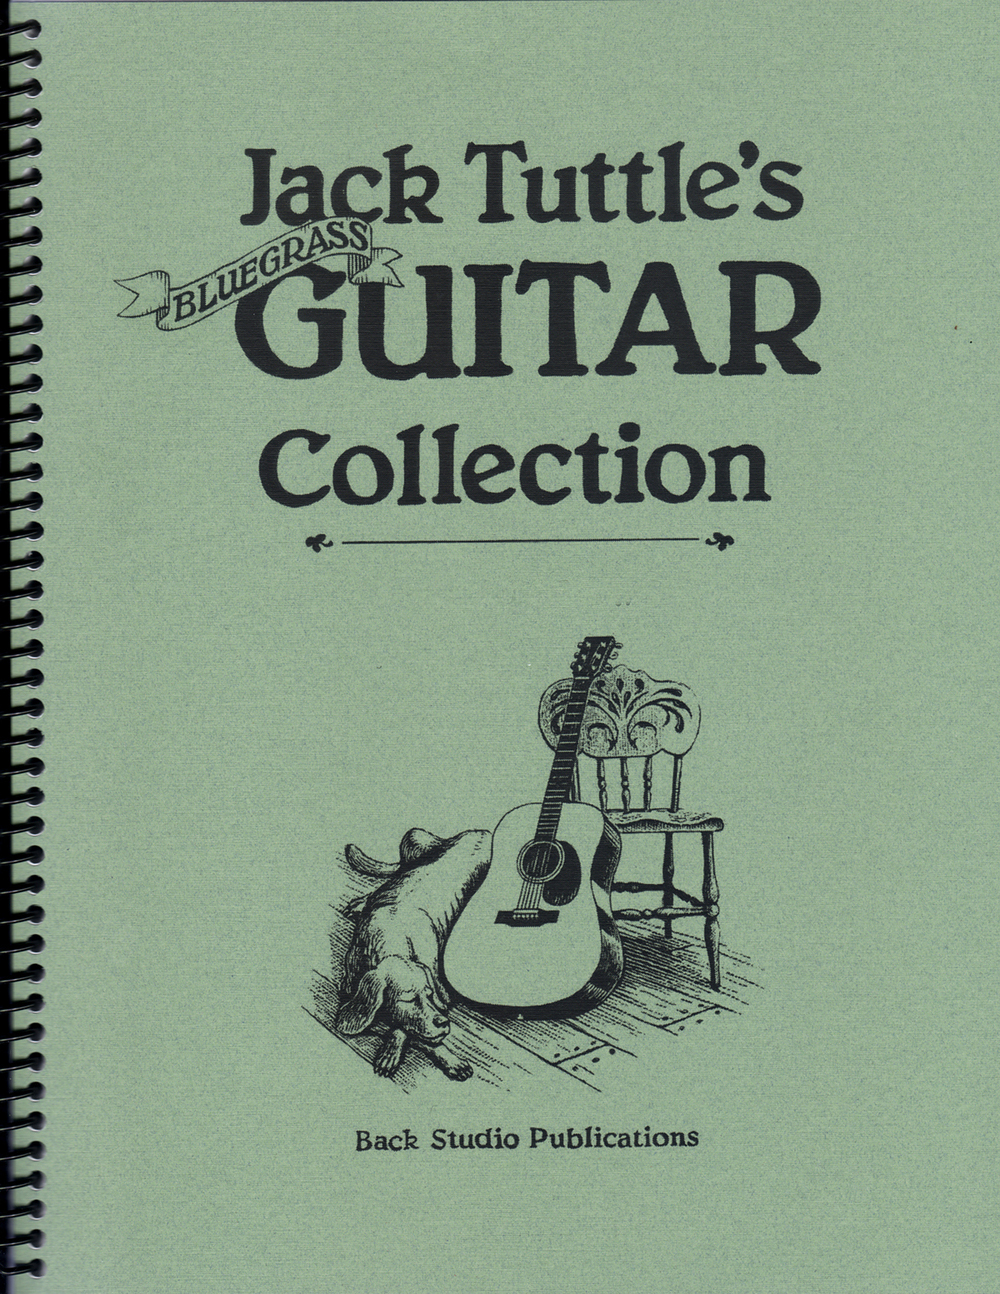 Jack Tuttle's Bluegrass Guitar Collection